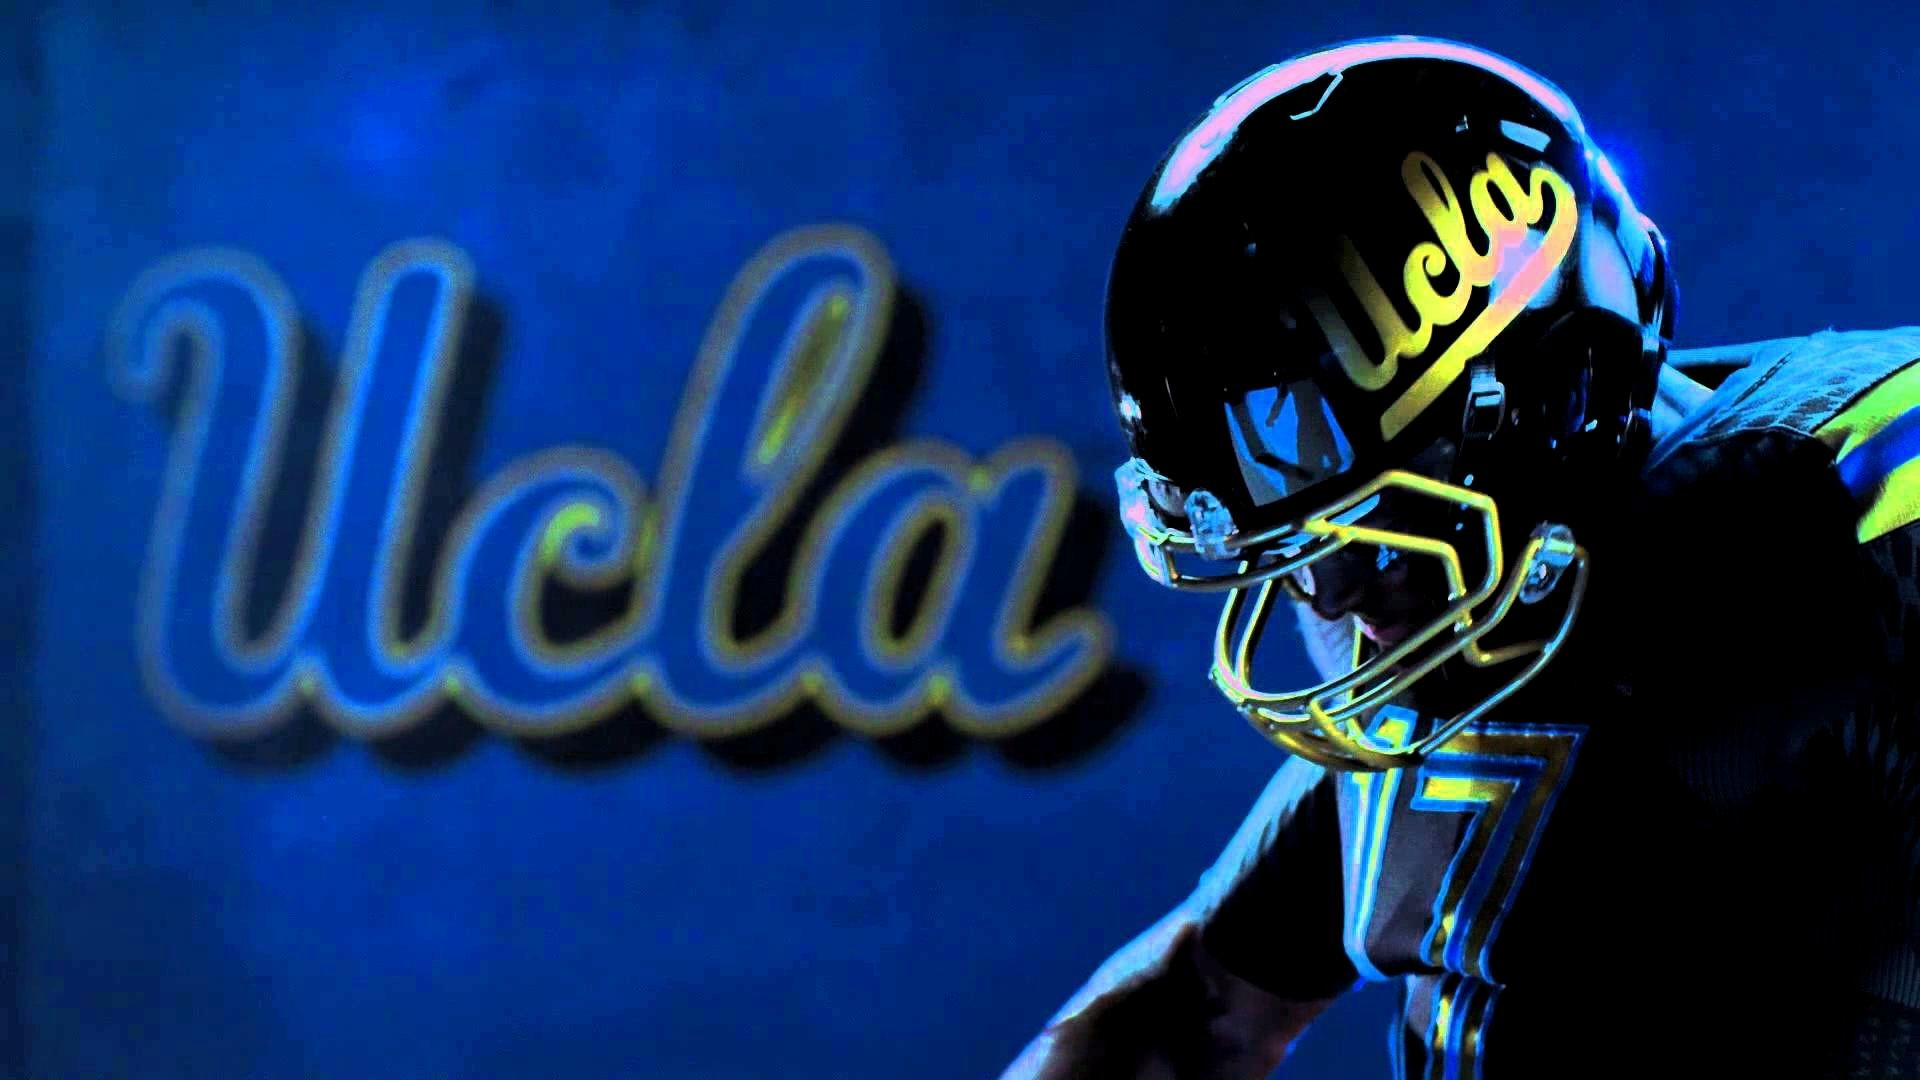 1920x1080 UCLA Wallpaper in HD 1920×1080 | HD Wallpapers | Wallpapers Download | High  Resolution Wallpapers